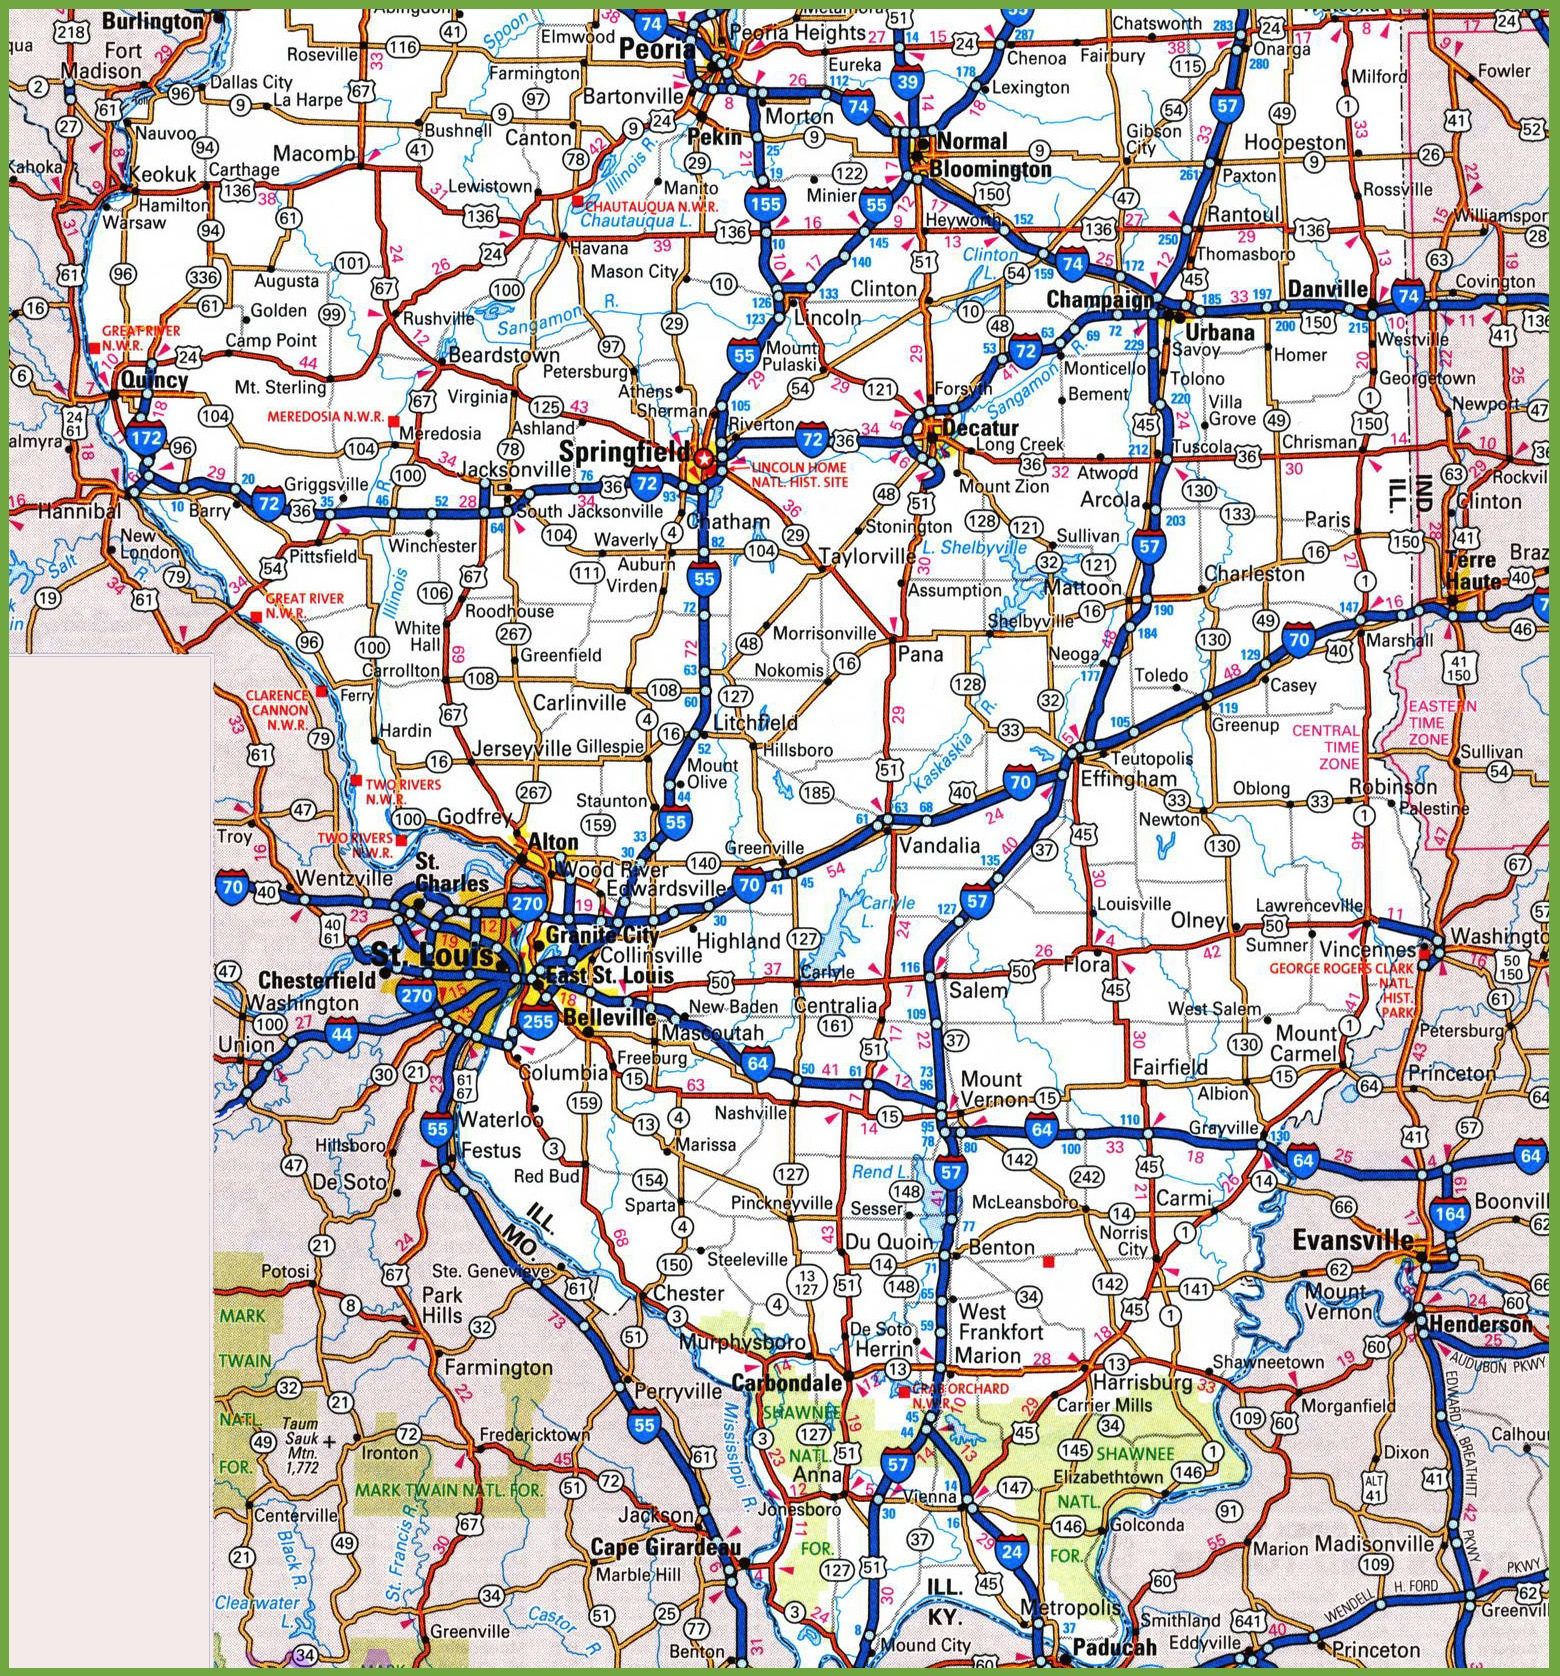 Map of Southern Illinois Il State Road Map on il state jobs, il state library, indiana road map, indiana rd map, il state road 100, iowa state map, il united states map, i'll state map, il hwy map, central illinois road map, missouri and illinois road map, il state university, illinois territory map, springfield il area map, i'll road map, illinois state highway map, il county map with roads,